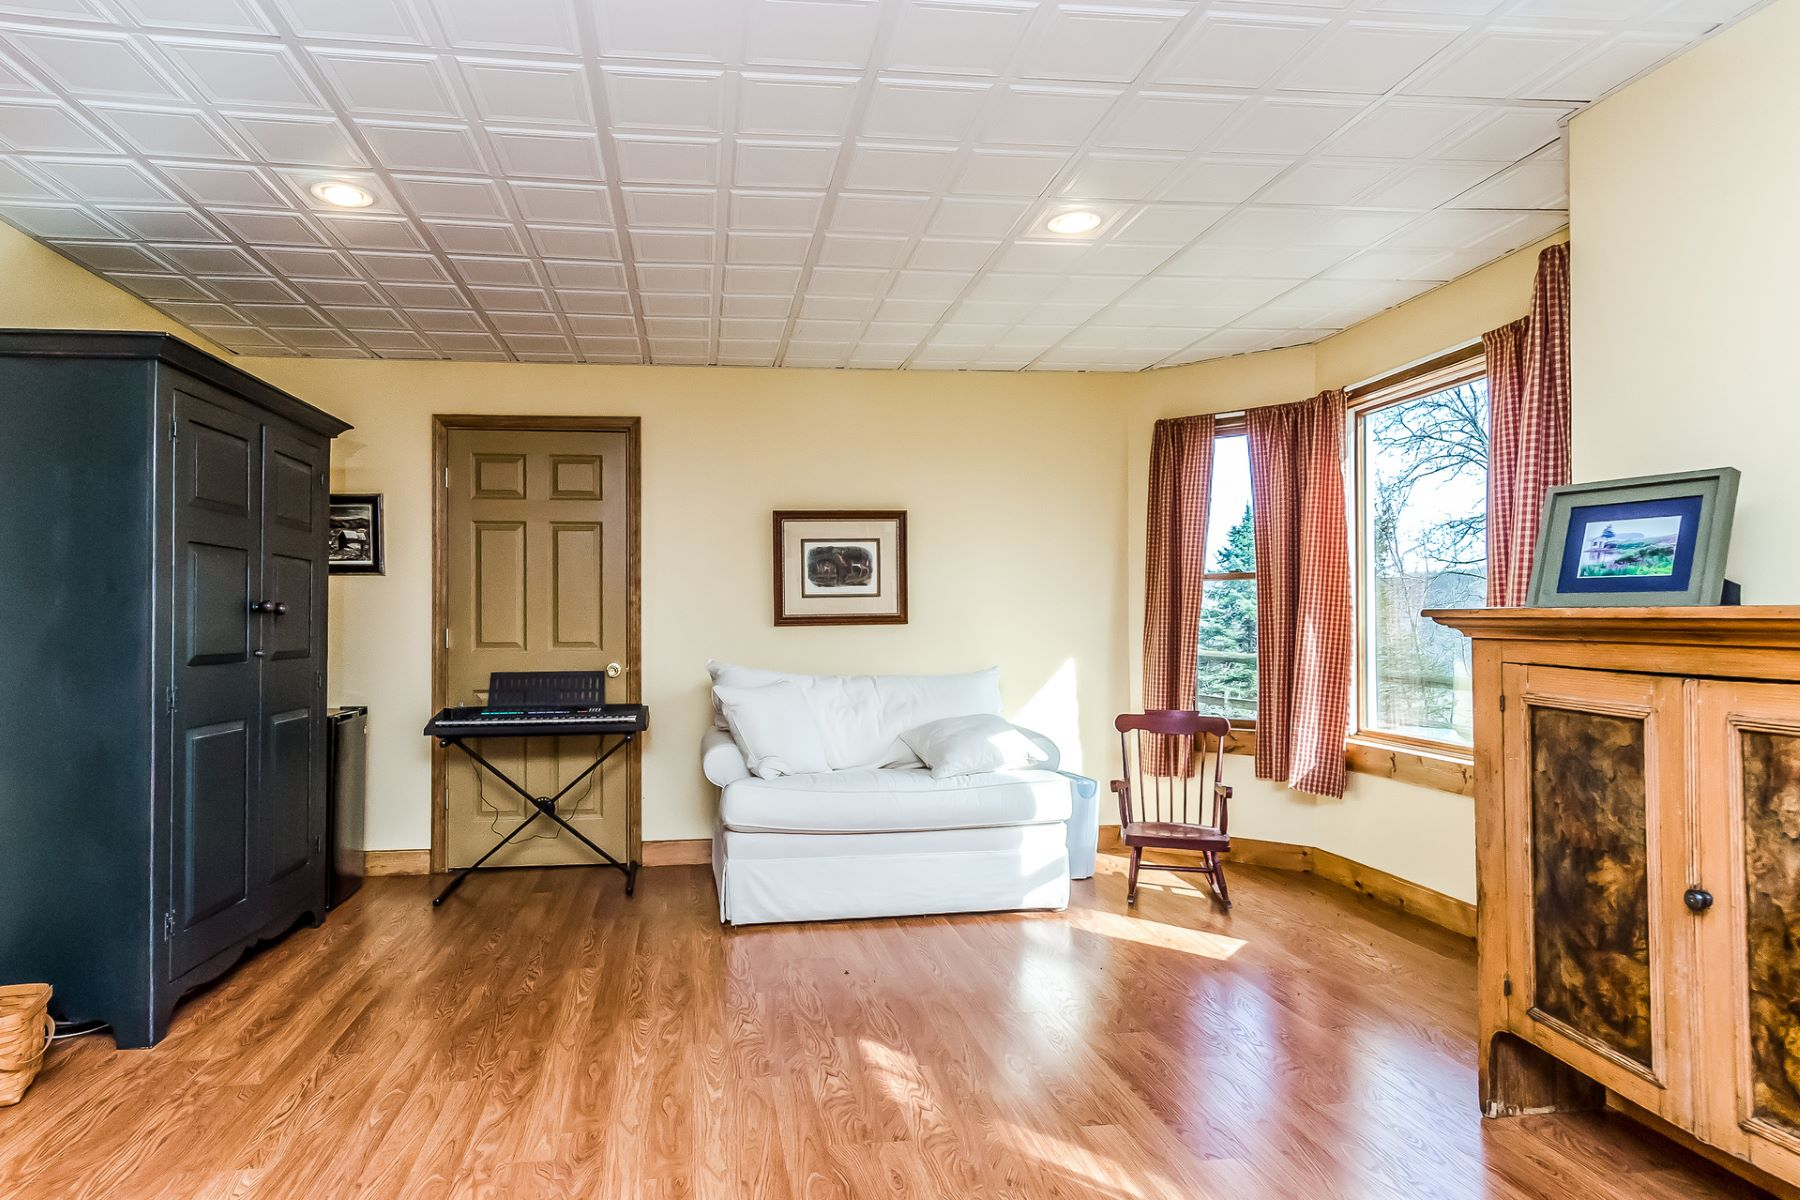 Additional photo for property listing at A Once In A Lifetime Opportunity - Holland Township 94 Riegelsville Road, Milford, New Jersey 08848 United States